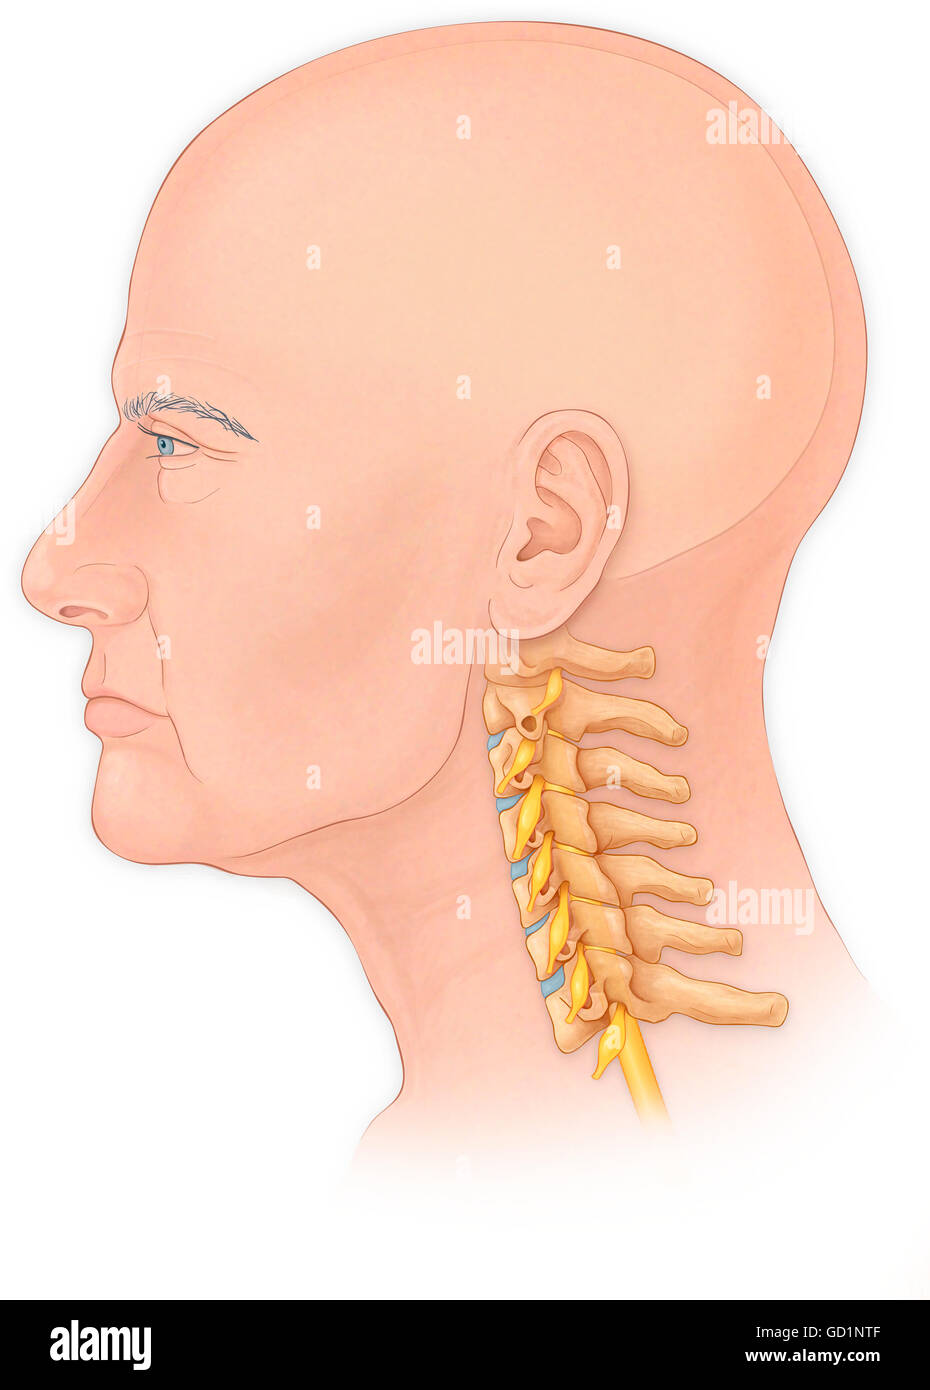 Normal lateral view of a mans head and neck with a skull, cervical vertebrae and spinal roots - Stock Image